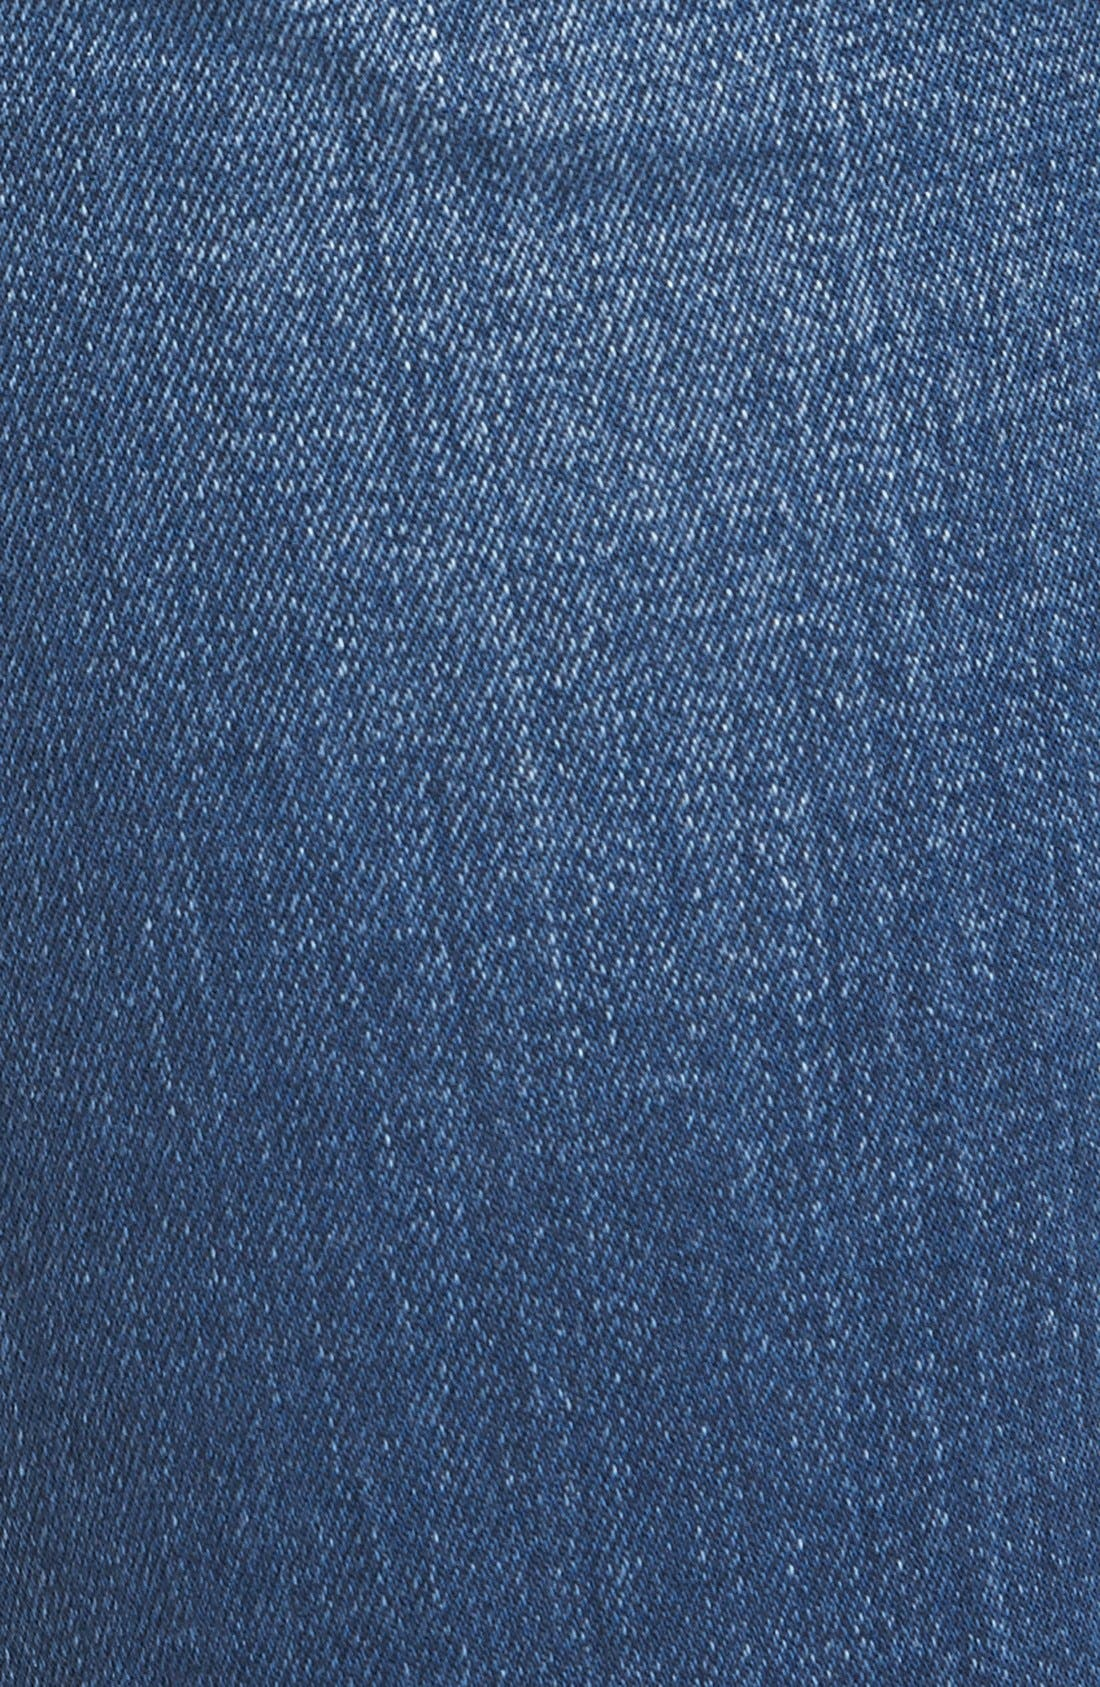 Alternate Image 5  - KUT from the Kloth 'Chrissy' Stretch Flare Leg Jeans (Inclusion)